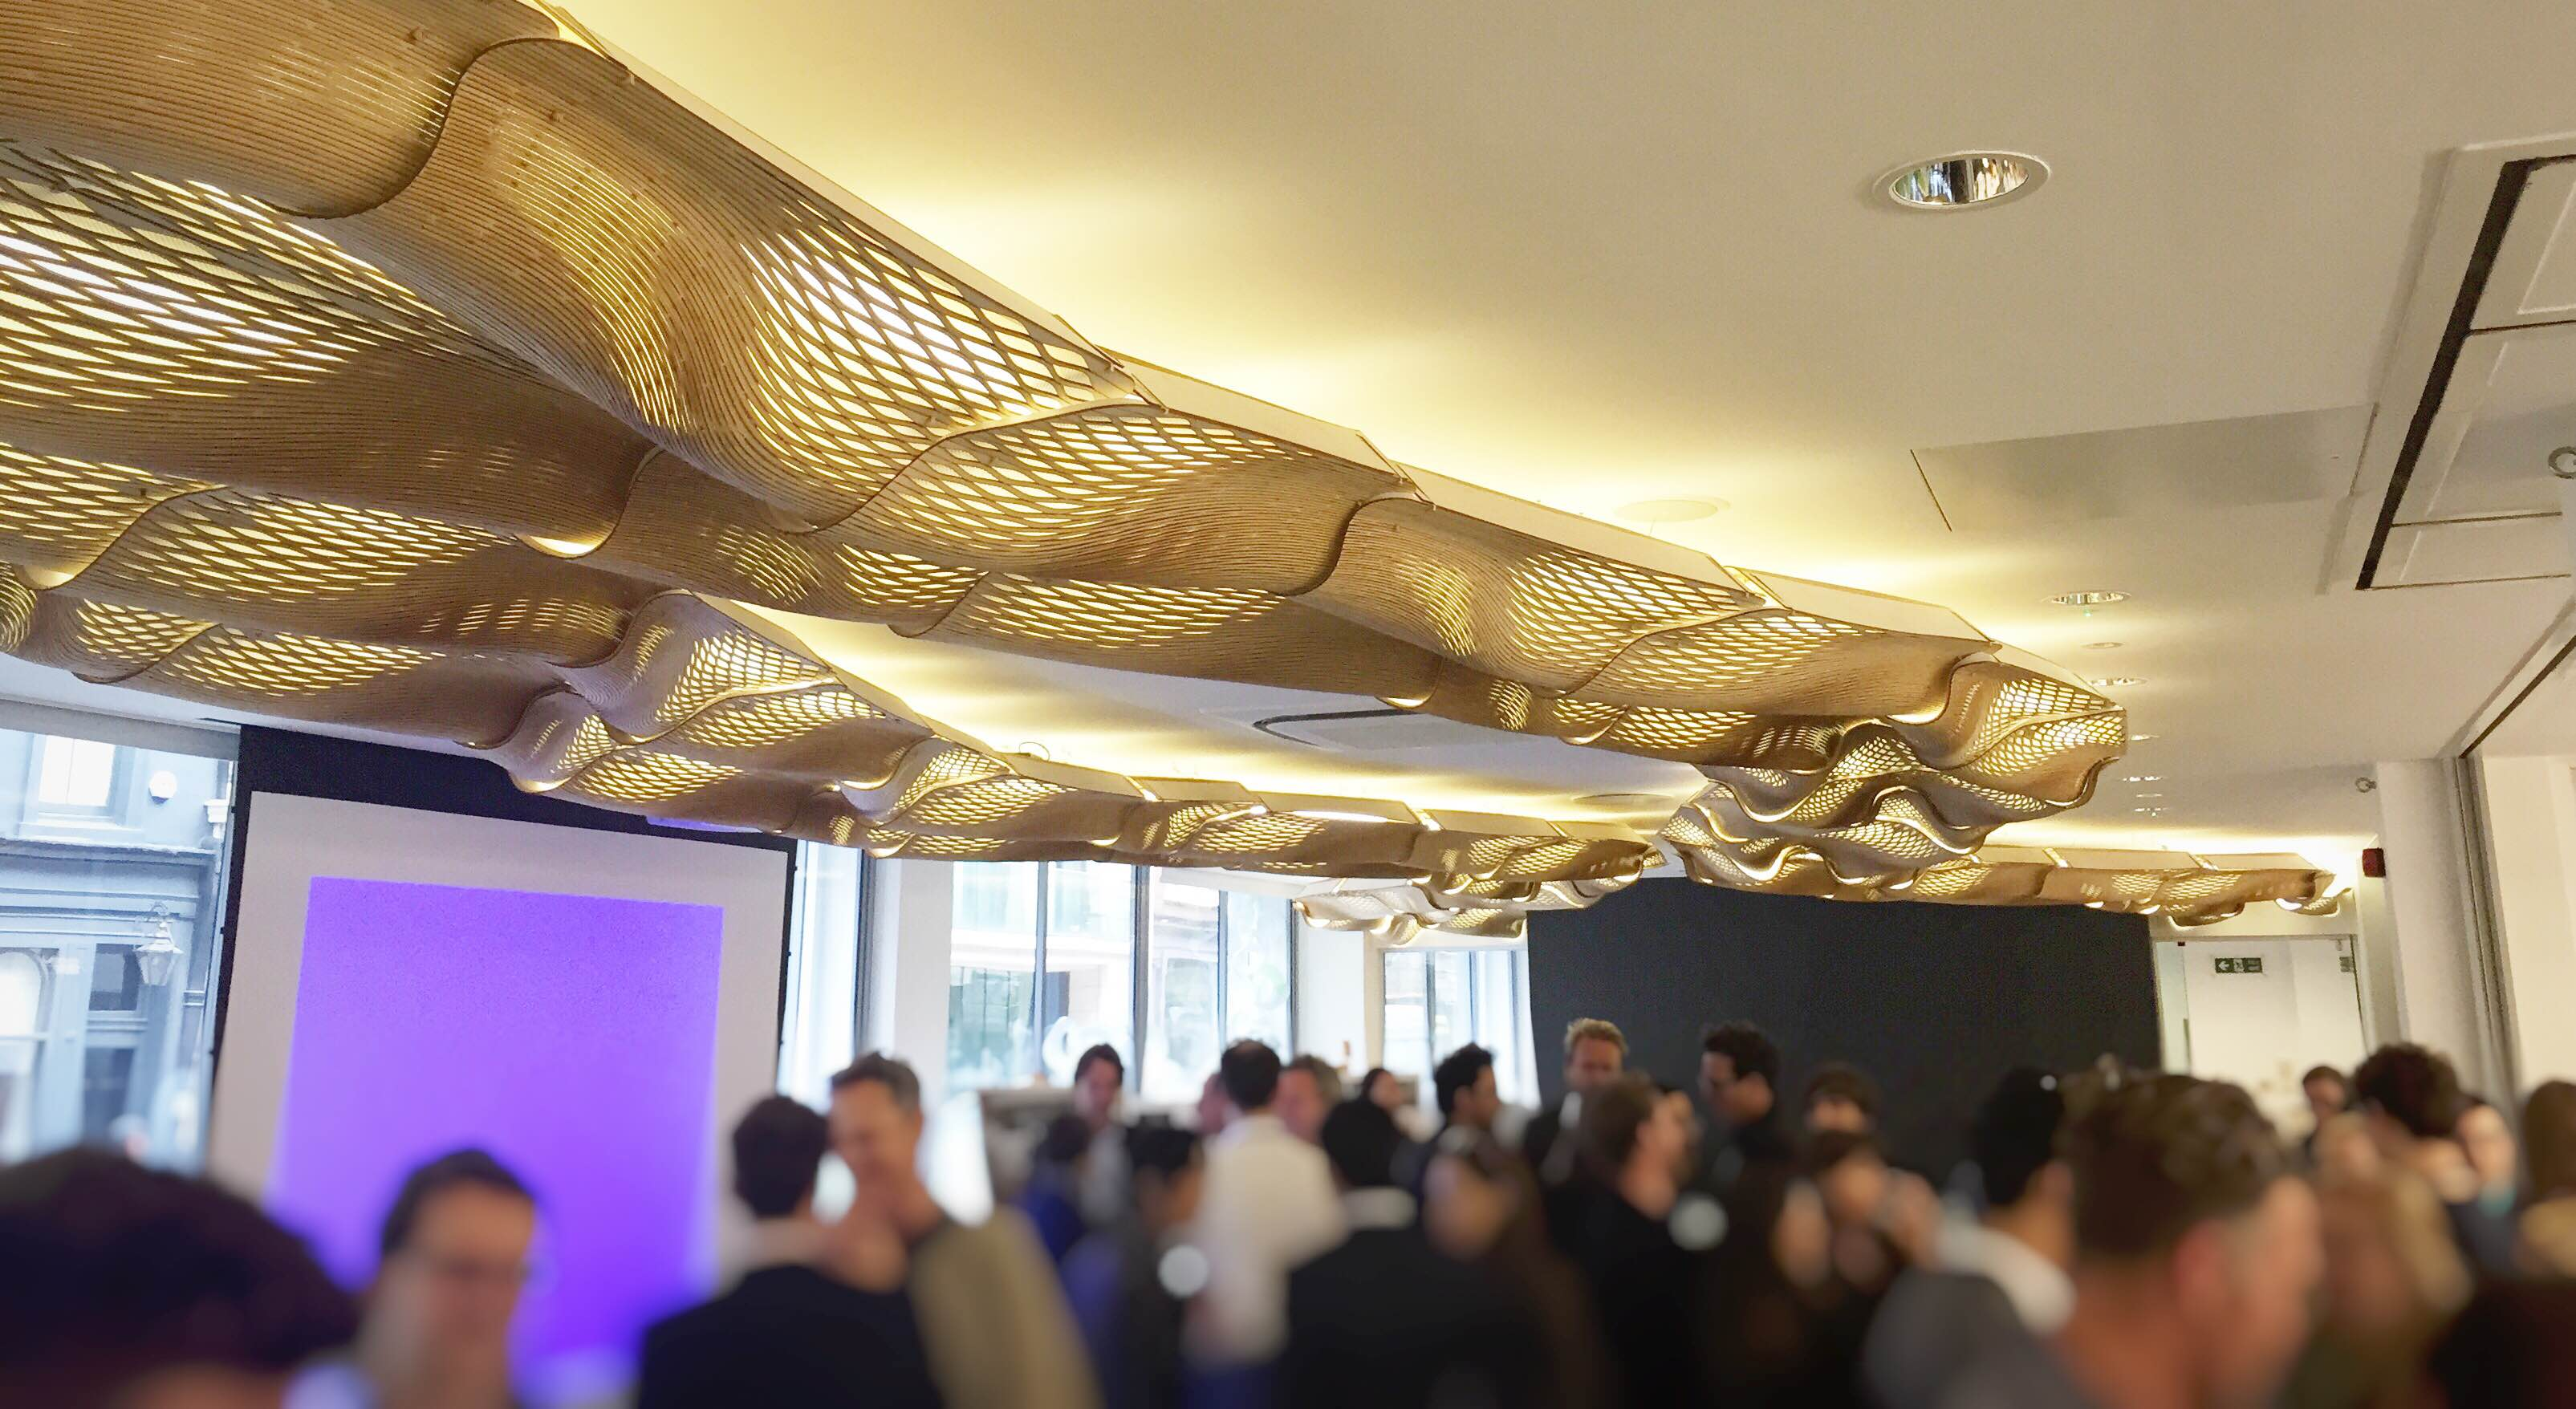 The WoodenWaves by Mamou-Mani at BuroHappold - Opening Event - Photo by Lorenzo Vianelli